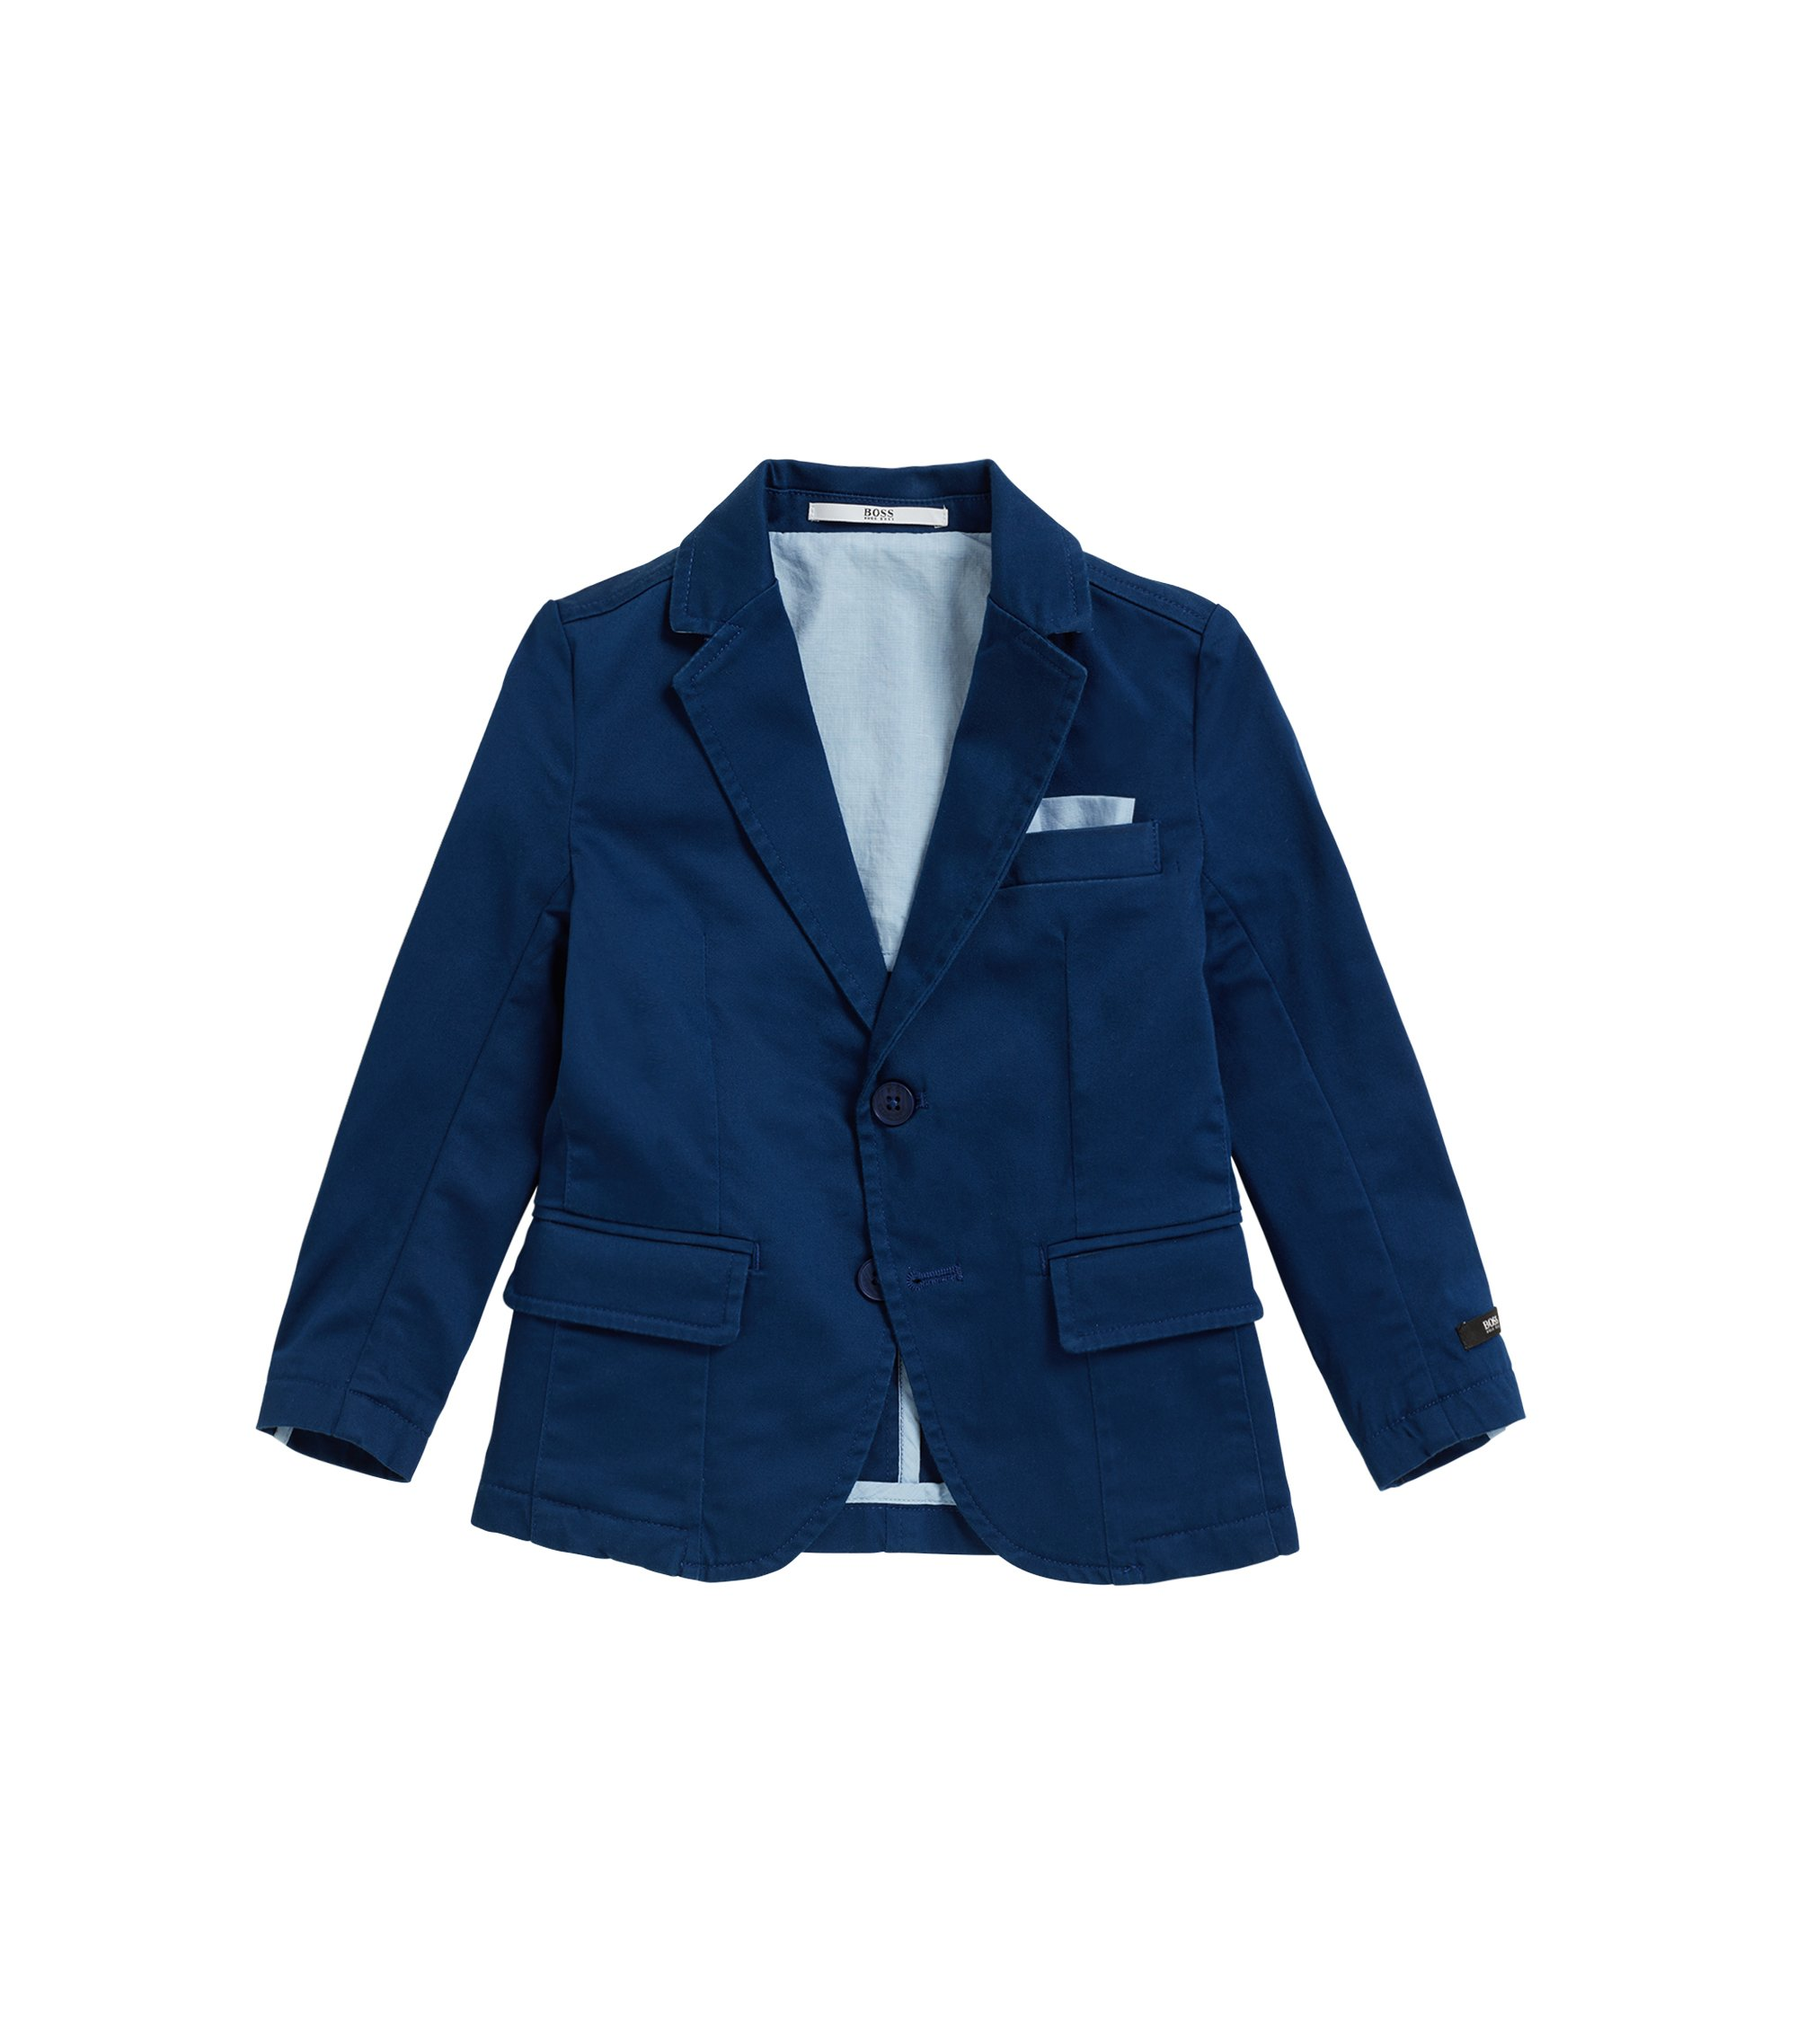 Kids' suit jacket in stretch satin cotton, Dark Blue